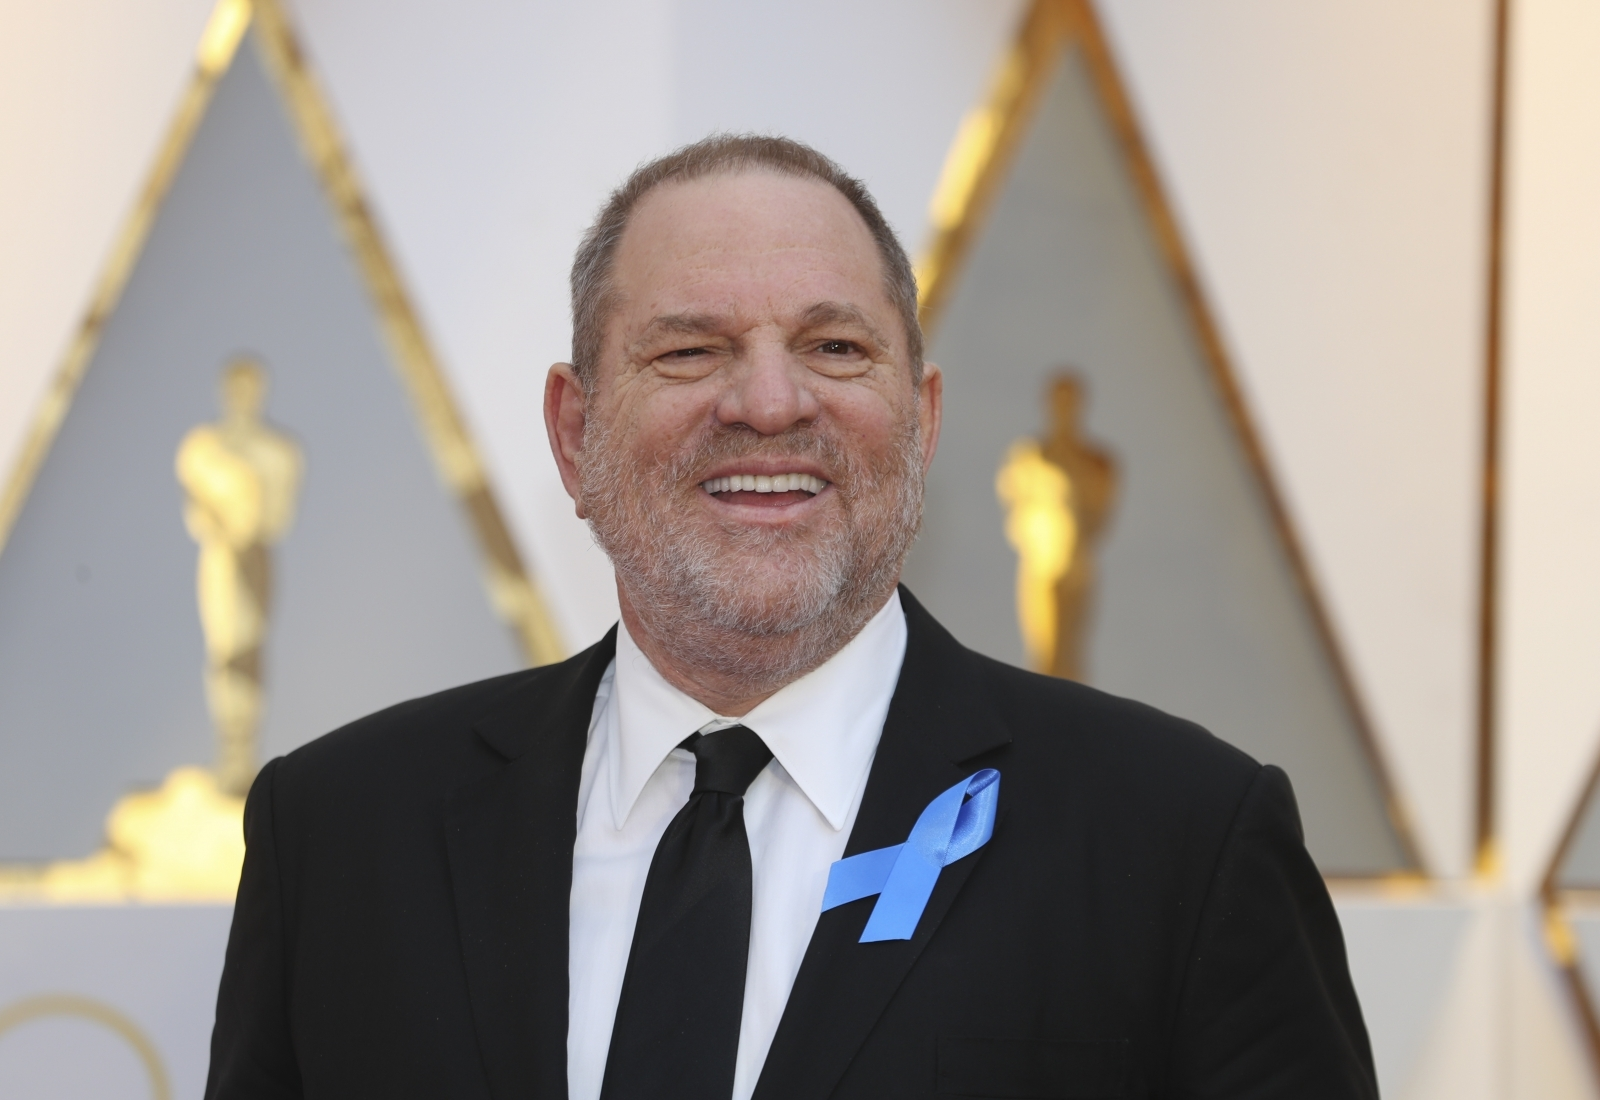 The plot thickens for Harvey Weinstein as more women claim sexual assault